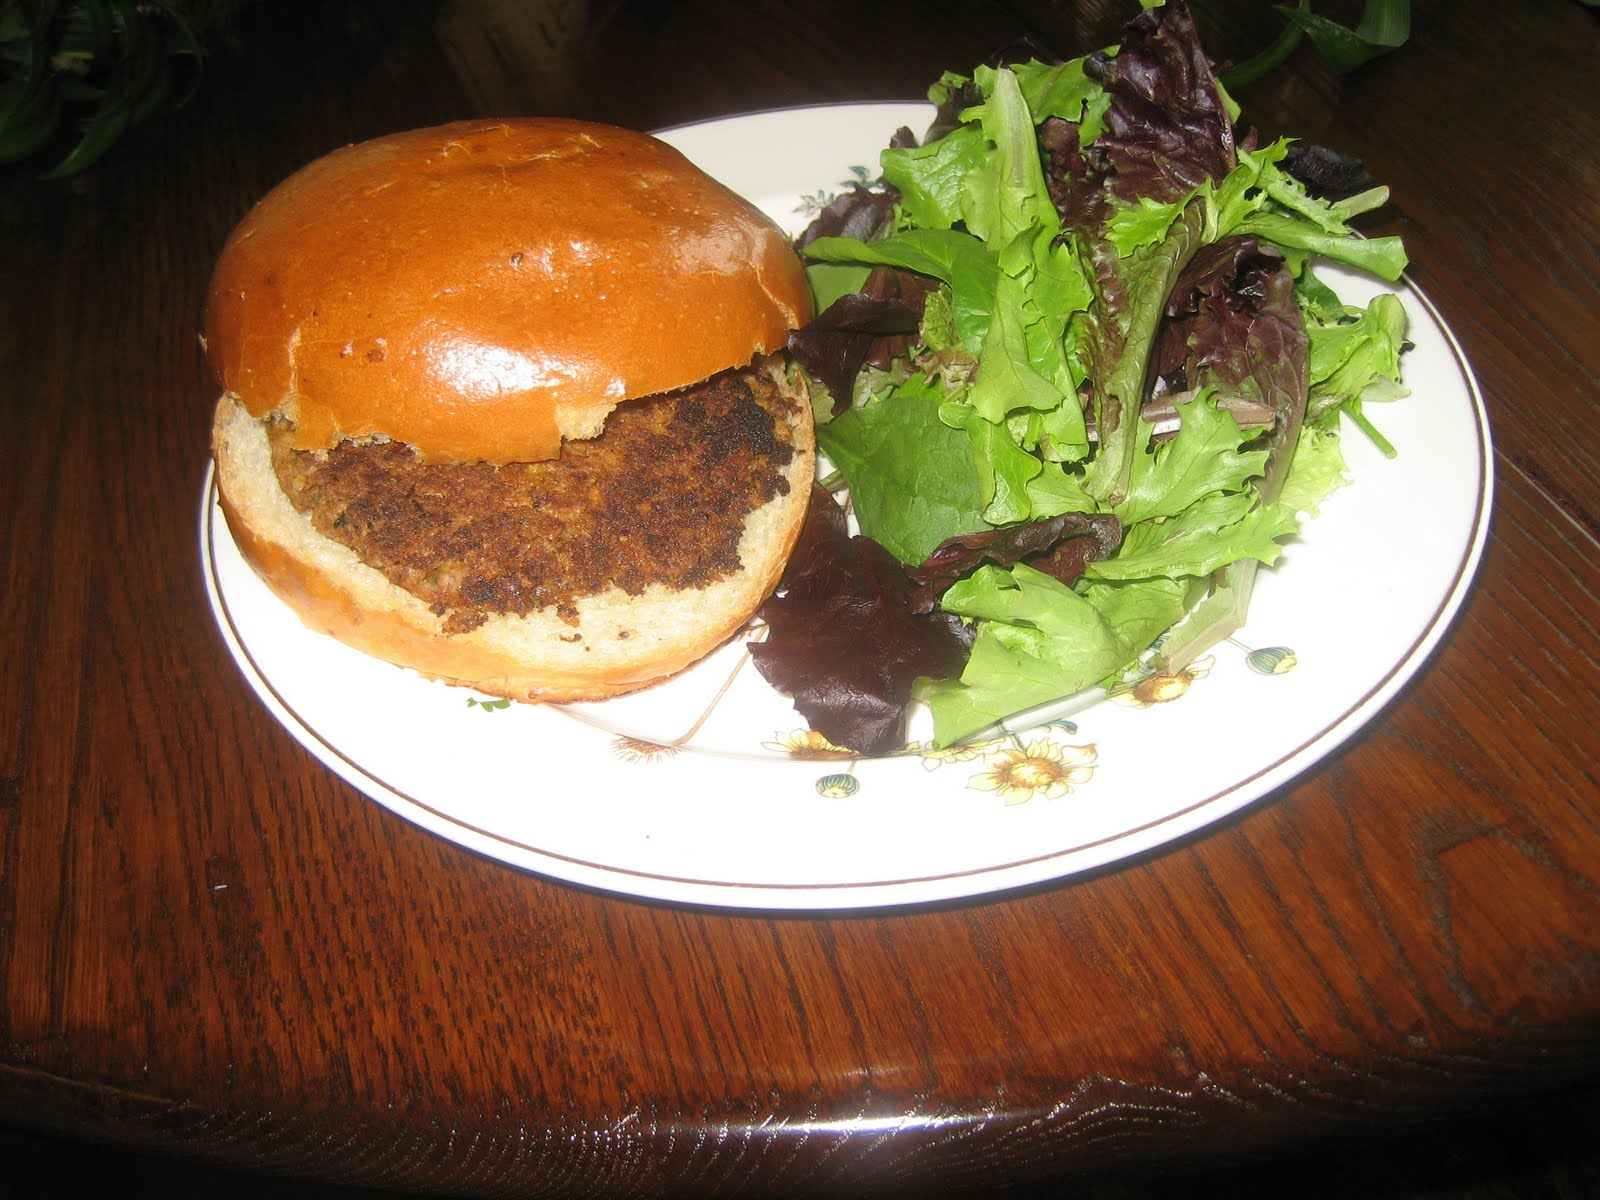 Vegan Burgers Part 1: Rockin' Black Eyed Peas